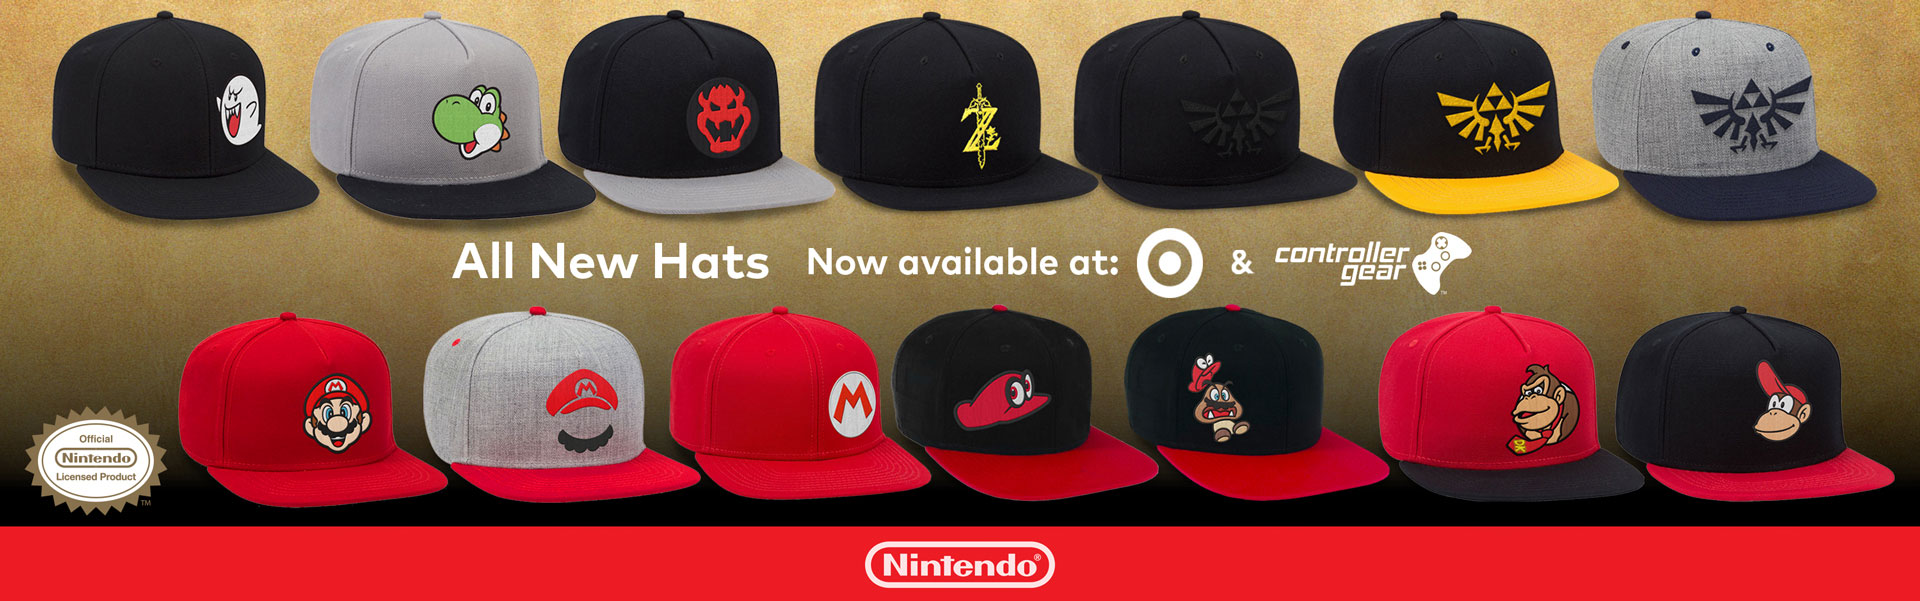 Hats by Controller Gear Licensed by Nintendo at Target